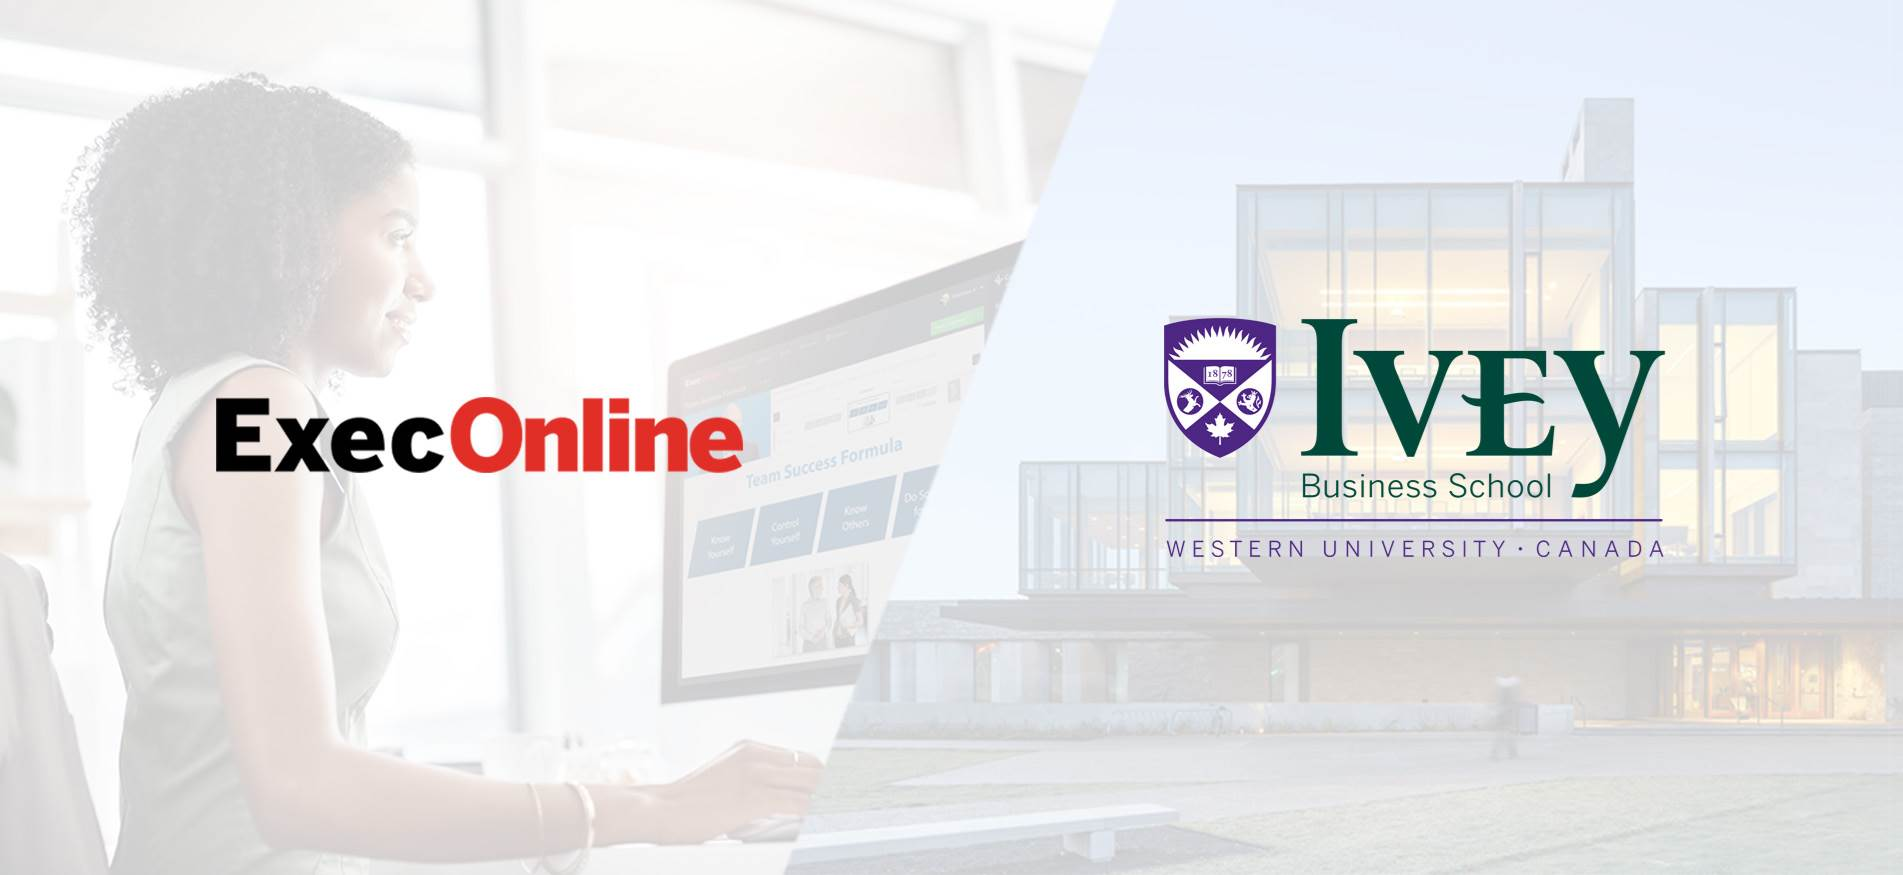 Split image: Woman looking at online program on laptop (left) and exterior of Ivey Business School building (right)